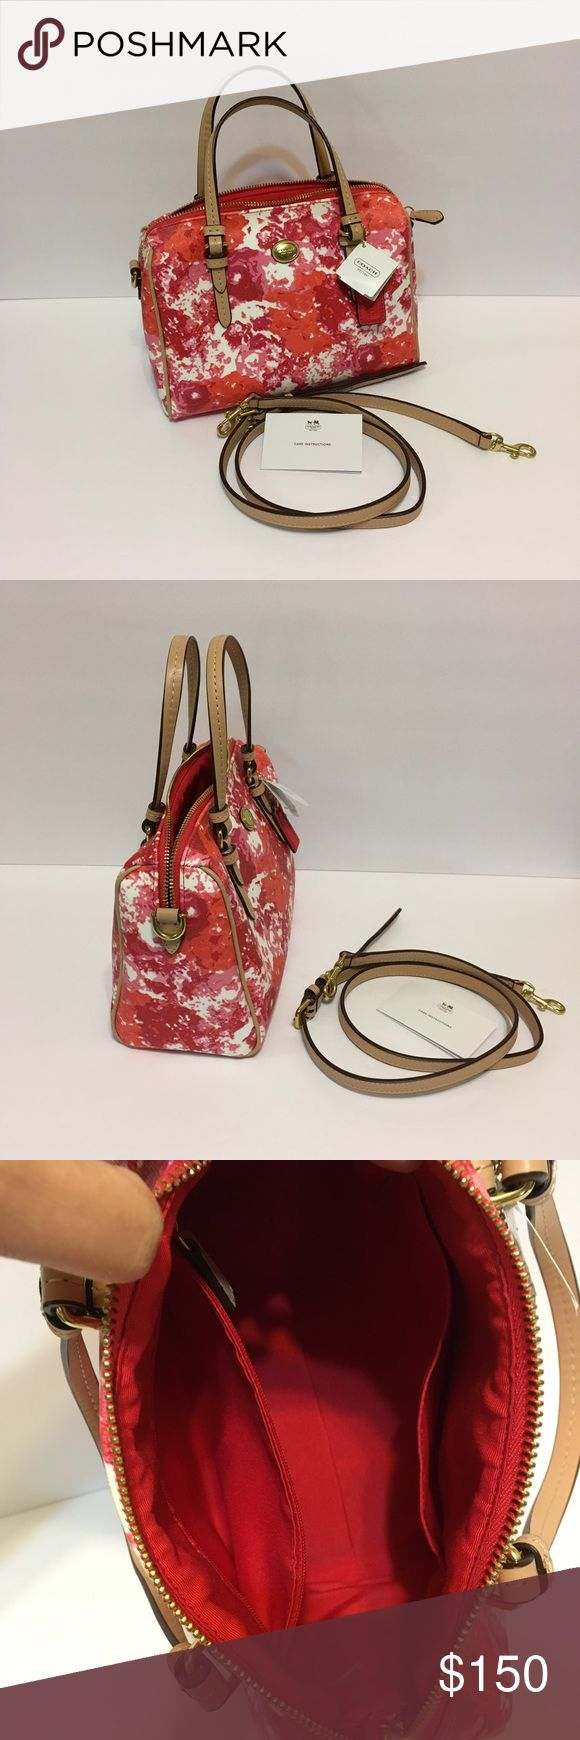 💜Coach Purchased in 2014 but used only once. I figured its  small for me :) but it can be a perfect size for others 🌸color is pink Multicolor, it's like new, very clean inside and out.🌸 Coach Bags Mini Bags